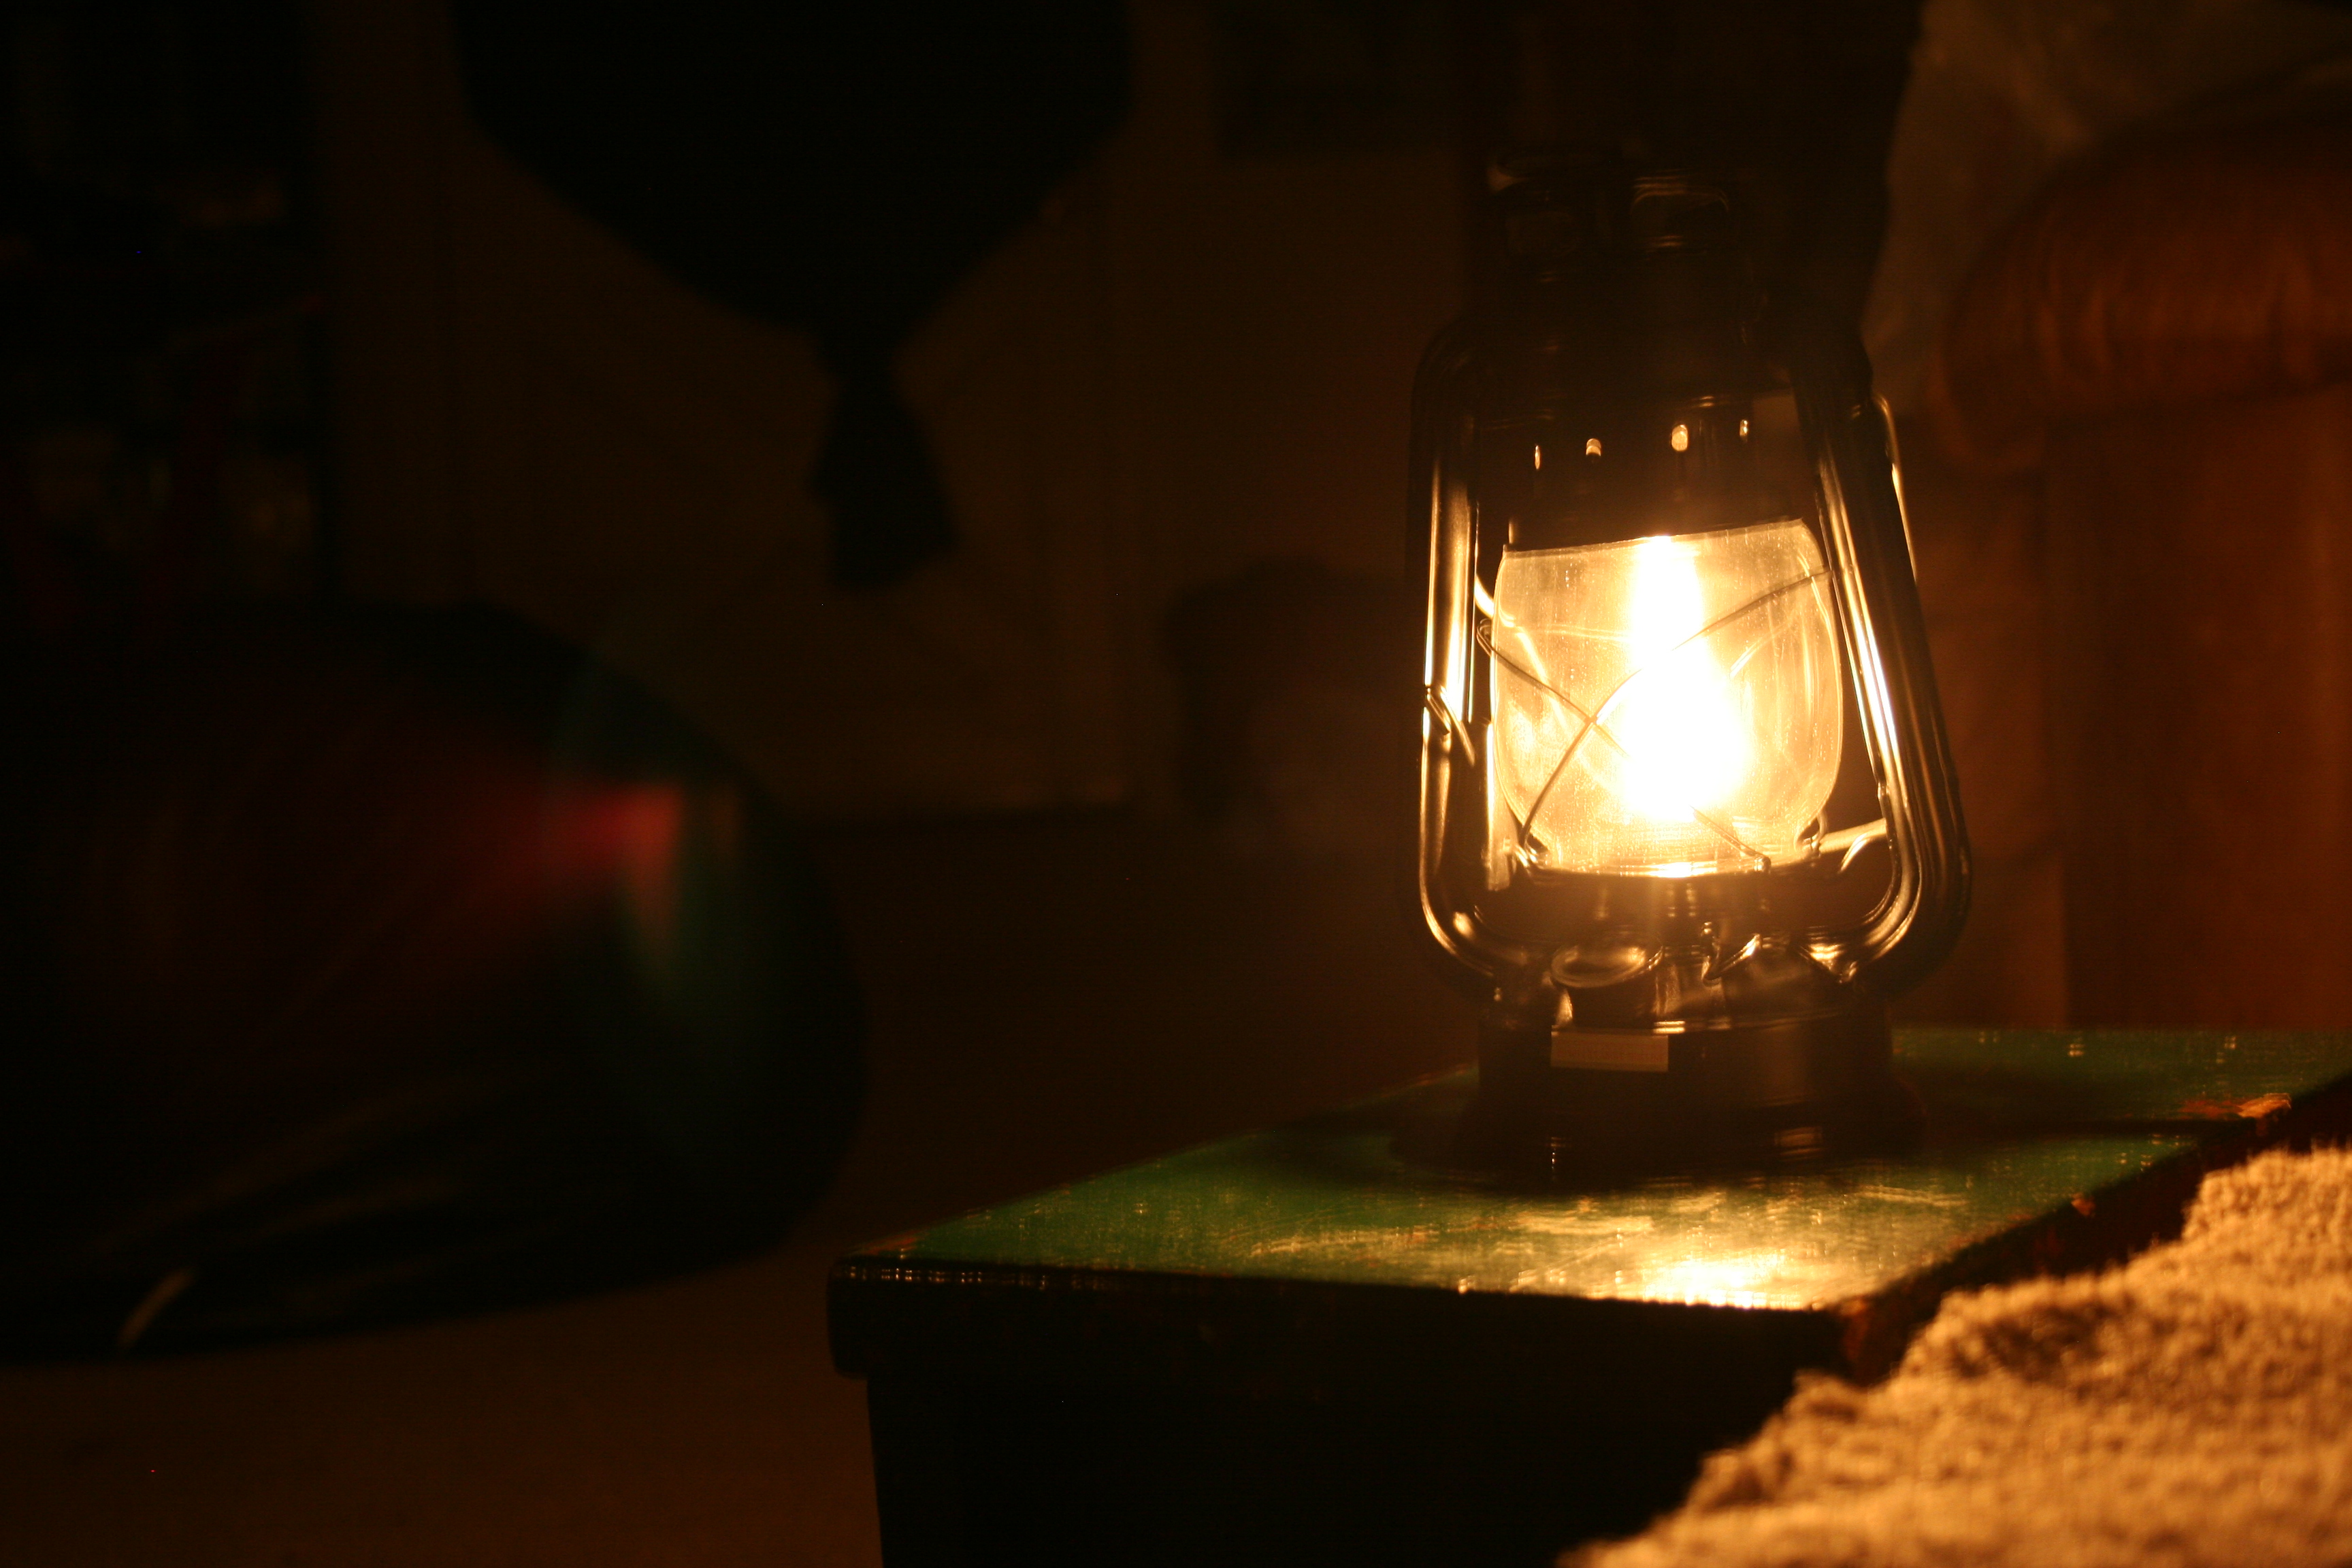 lamp and bible - photo #14